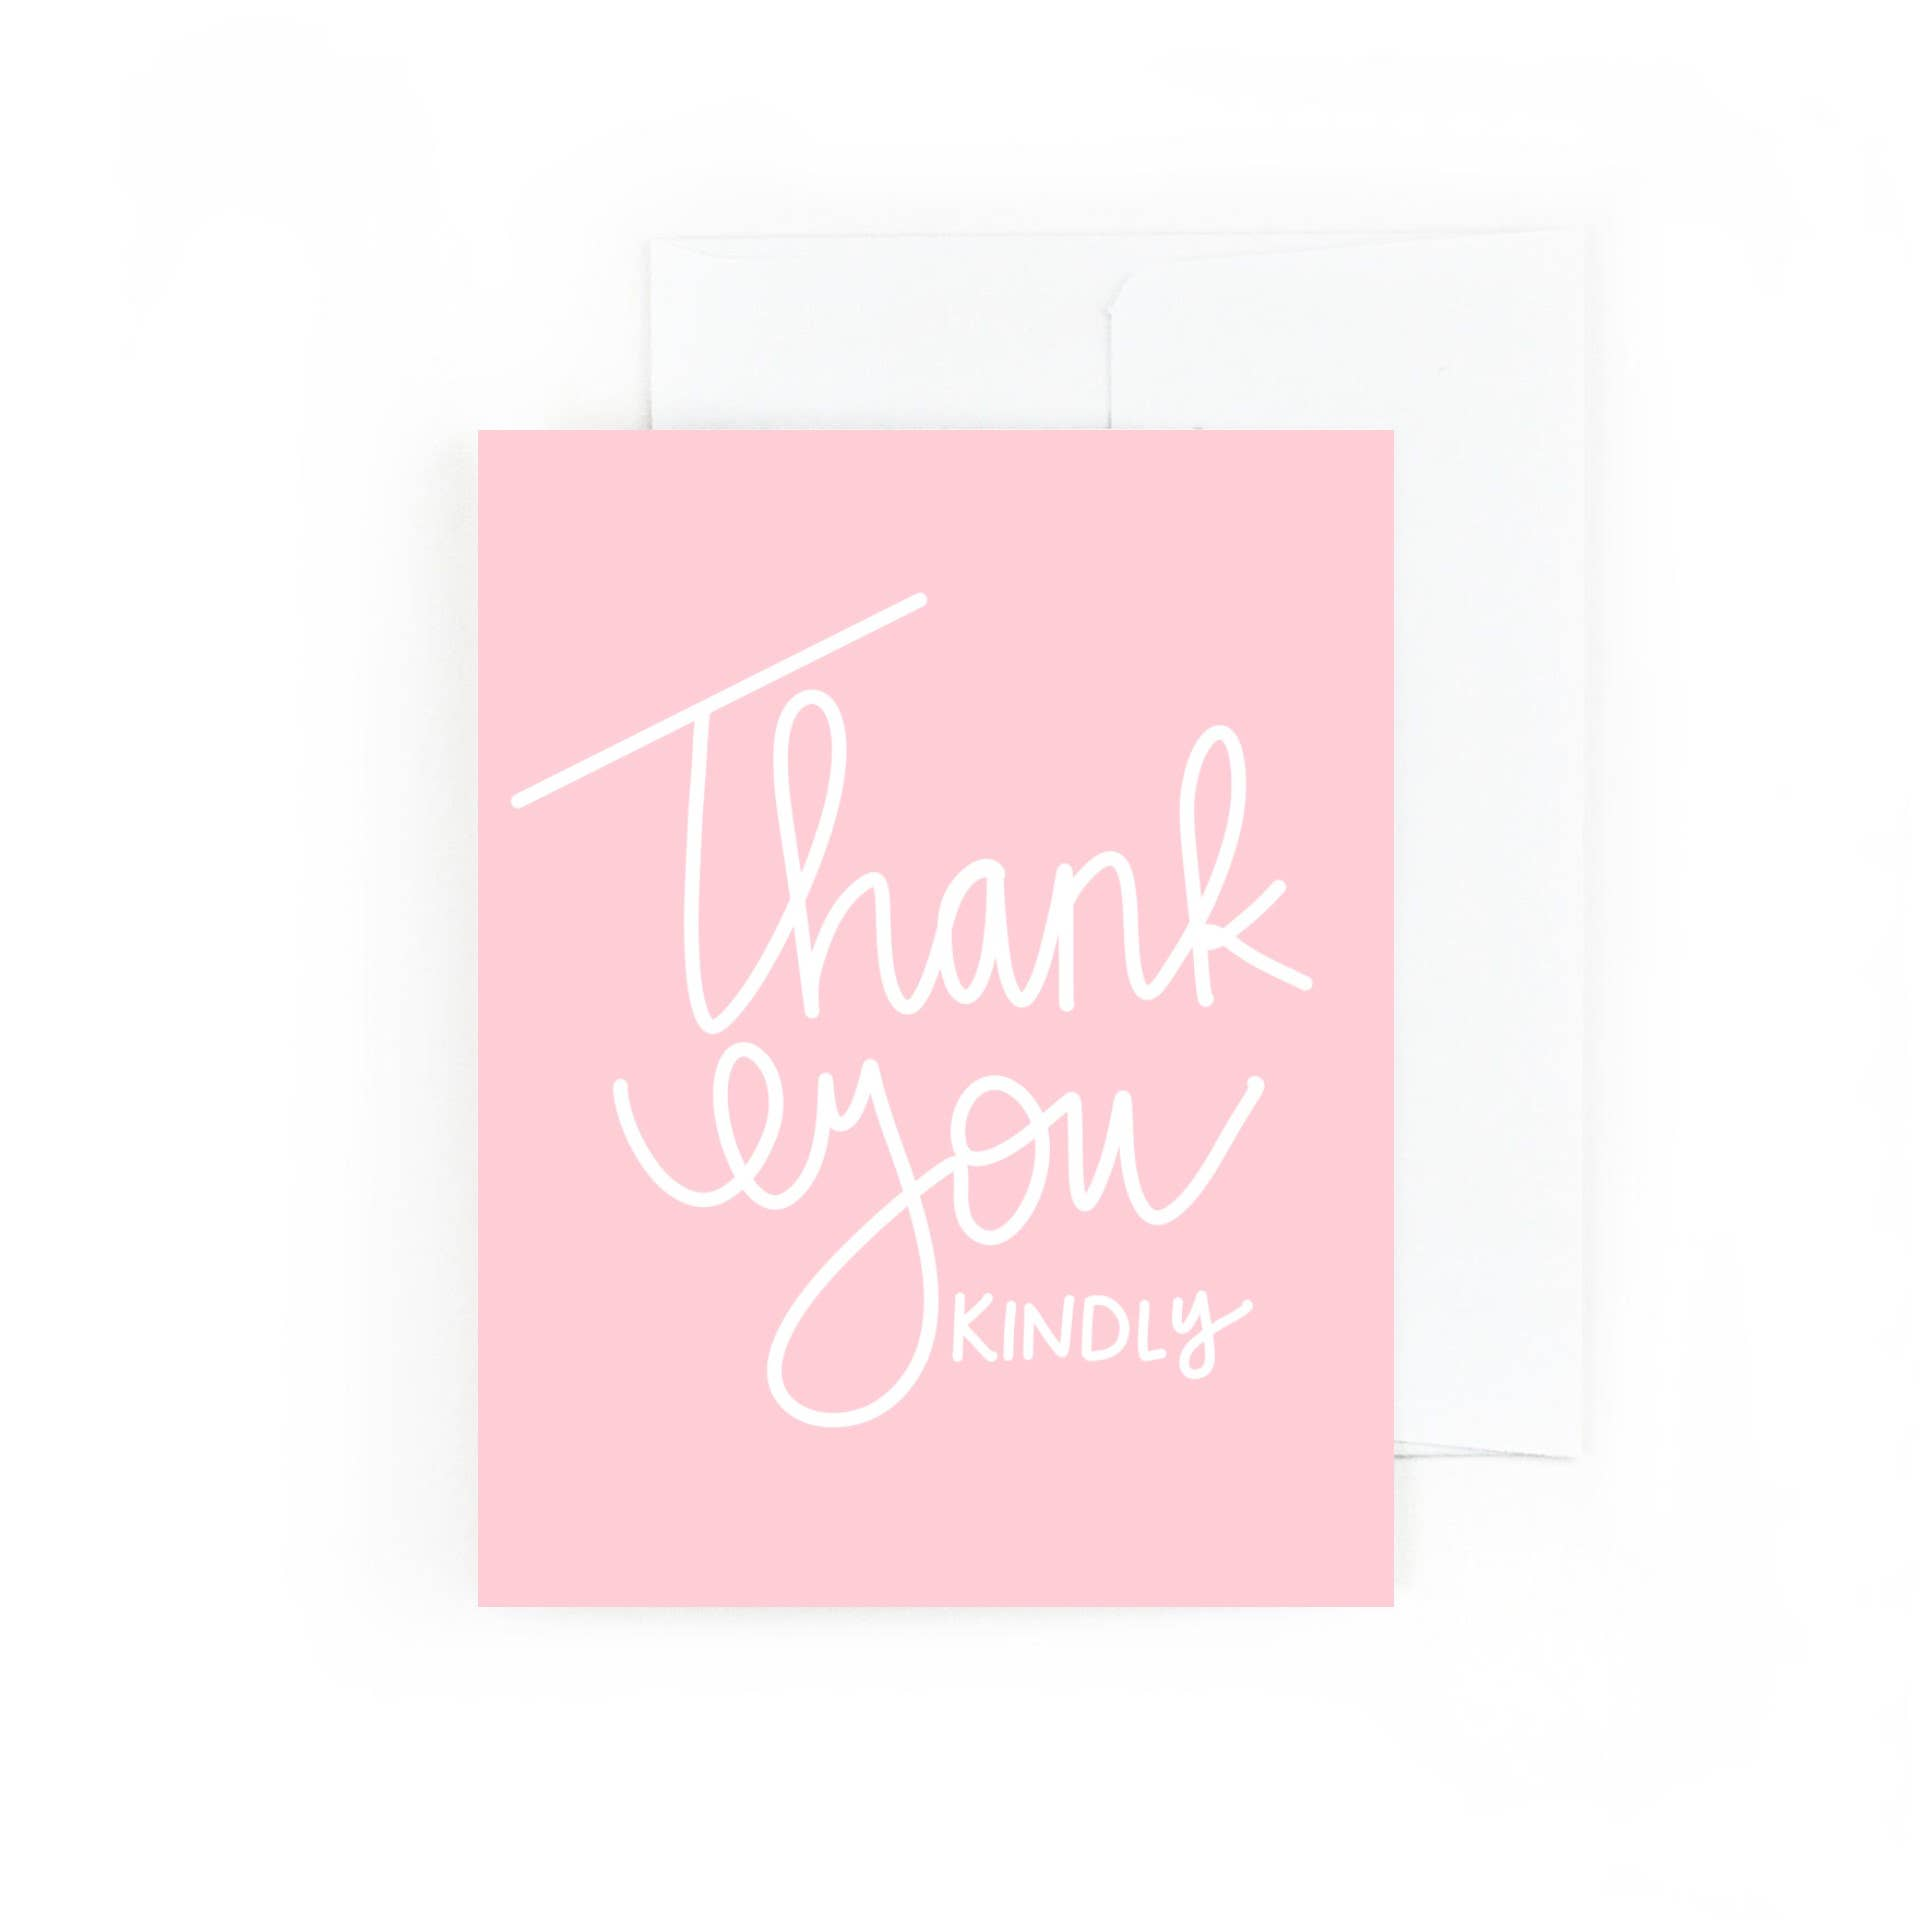 Light Pink Thank You Kindly | Trada Marketplace